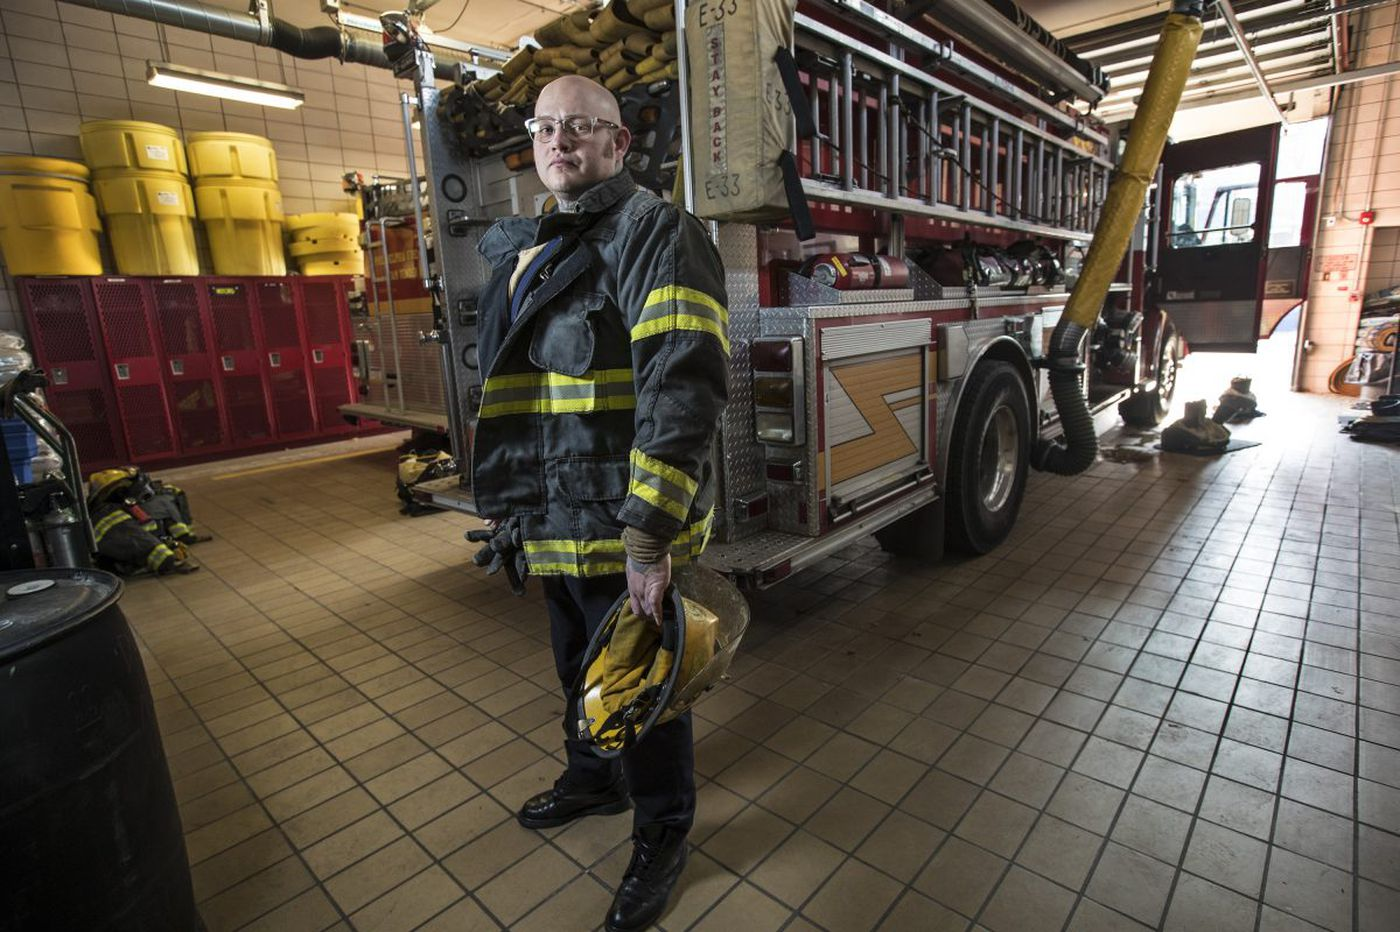 Philly firefighters and cancer: Coincidence or job hazard?